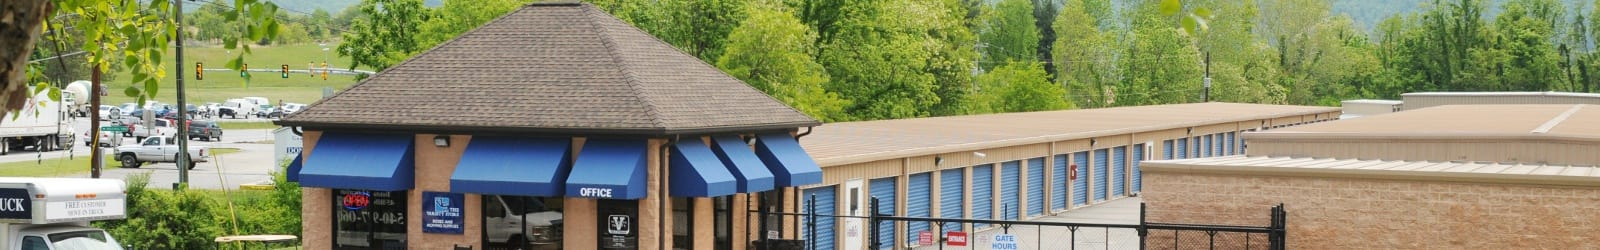 Self storage units in Roanoke